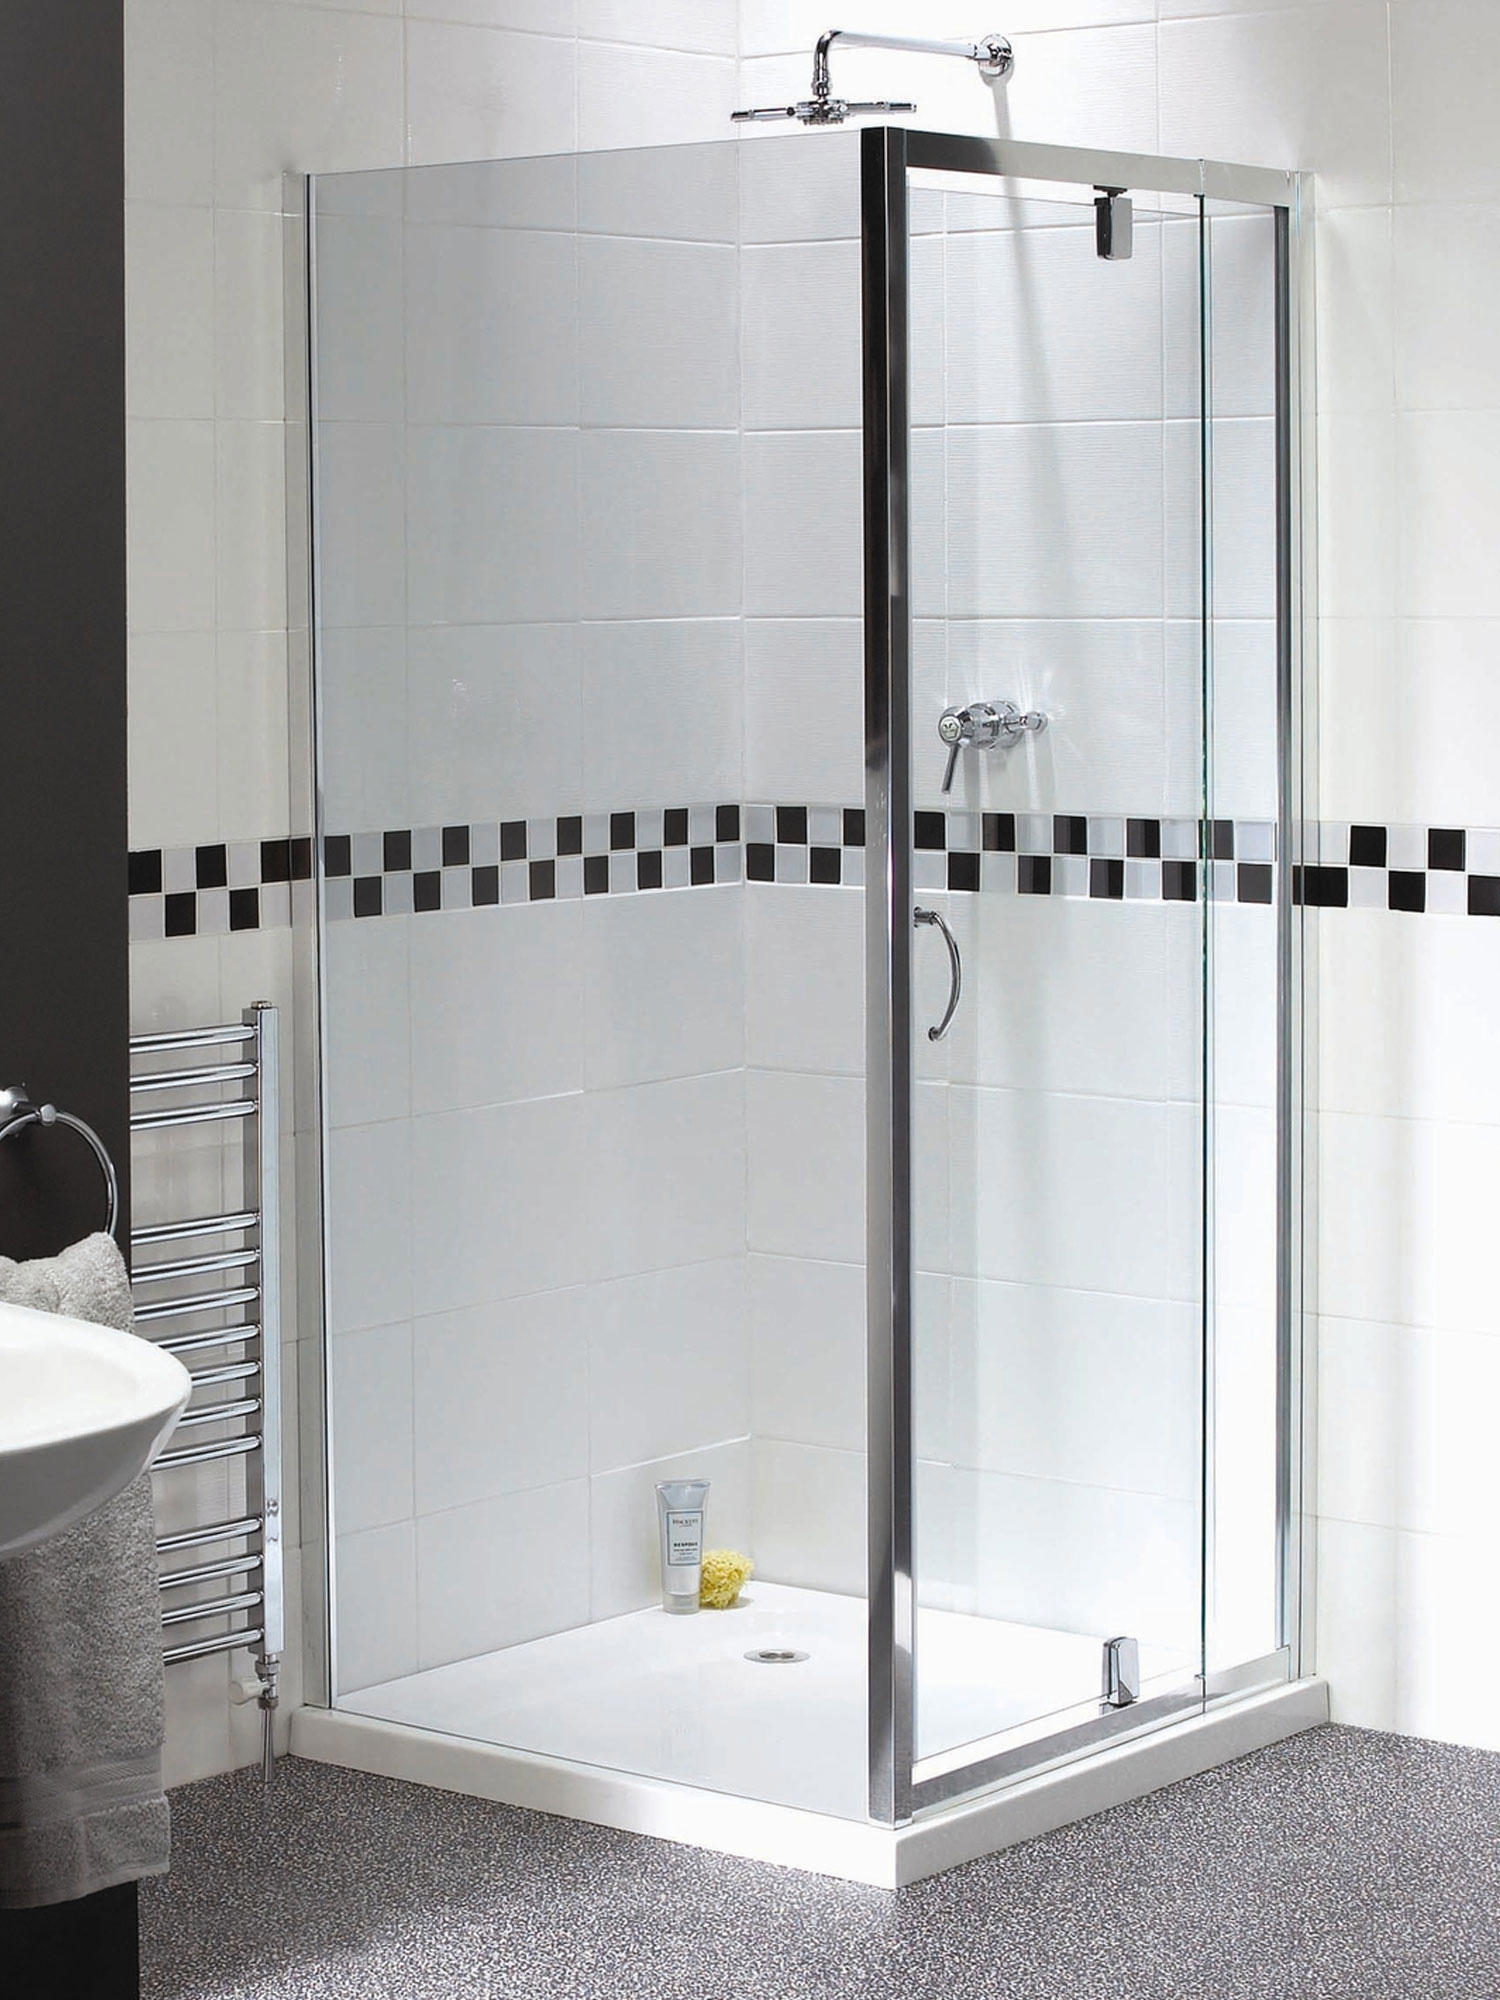 aqualux shine telescopic pivot door 760900mm - Delta Shower Doors